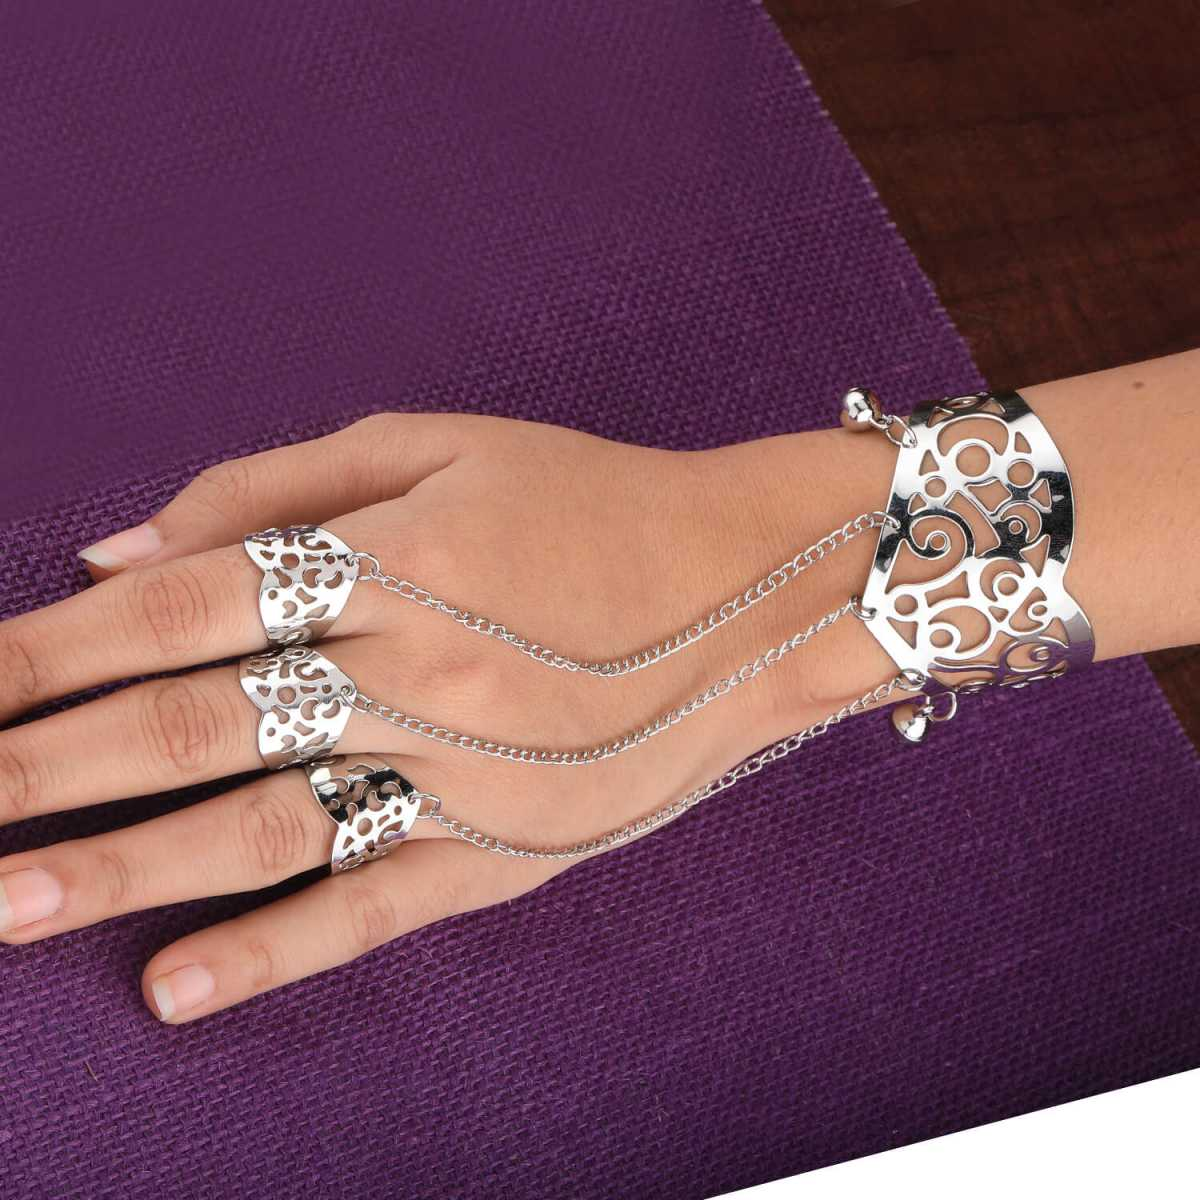 SILVER SHINE Silver Slave Chain Hand Harness Three Finger Ring Bracelet For Women